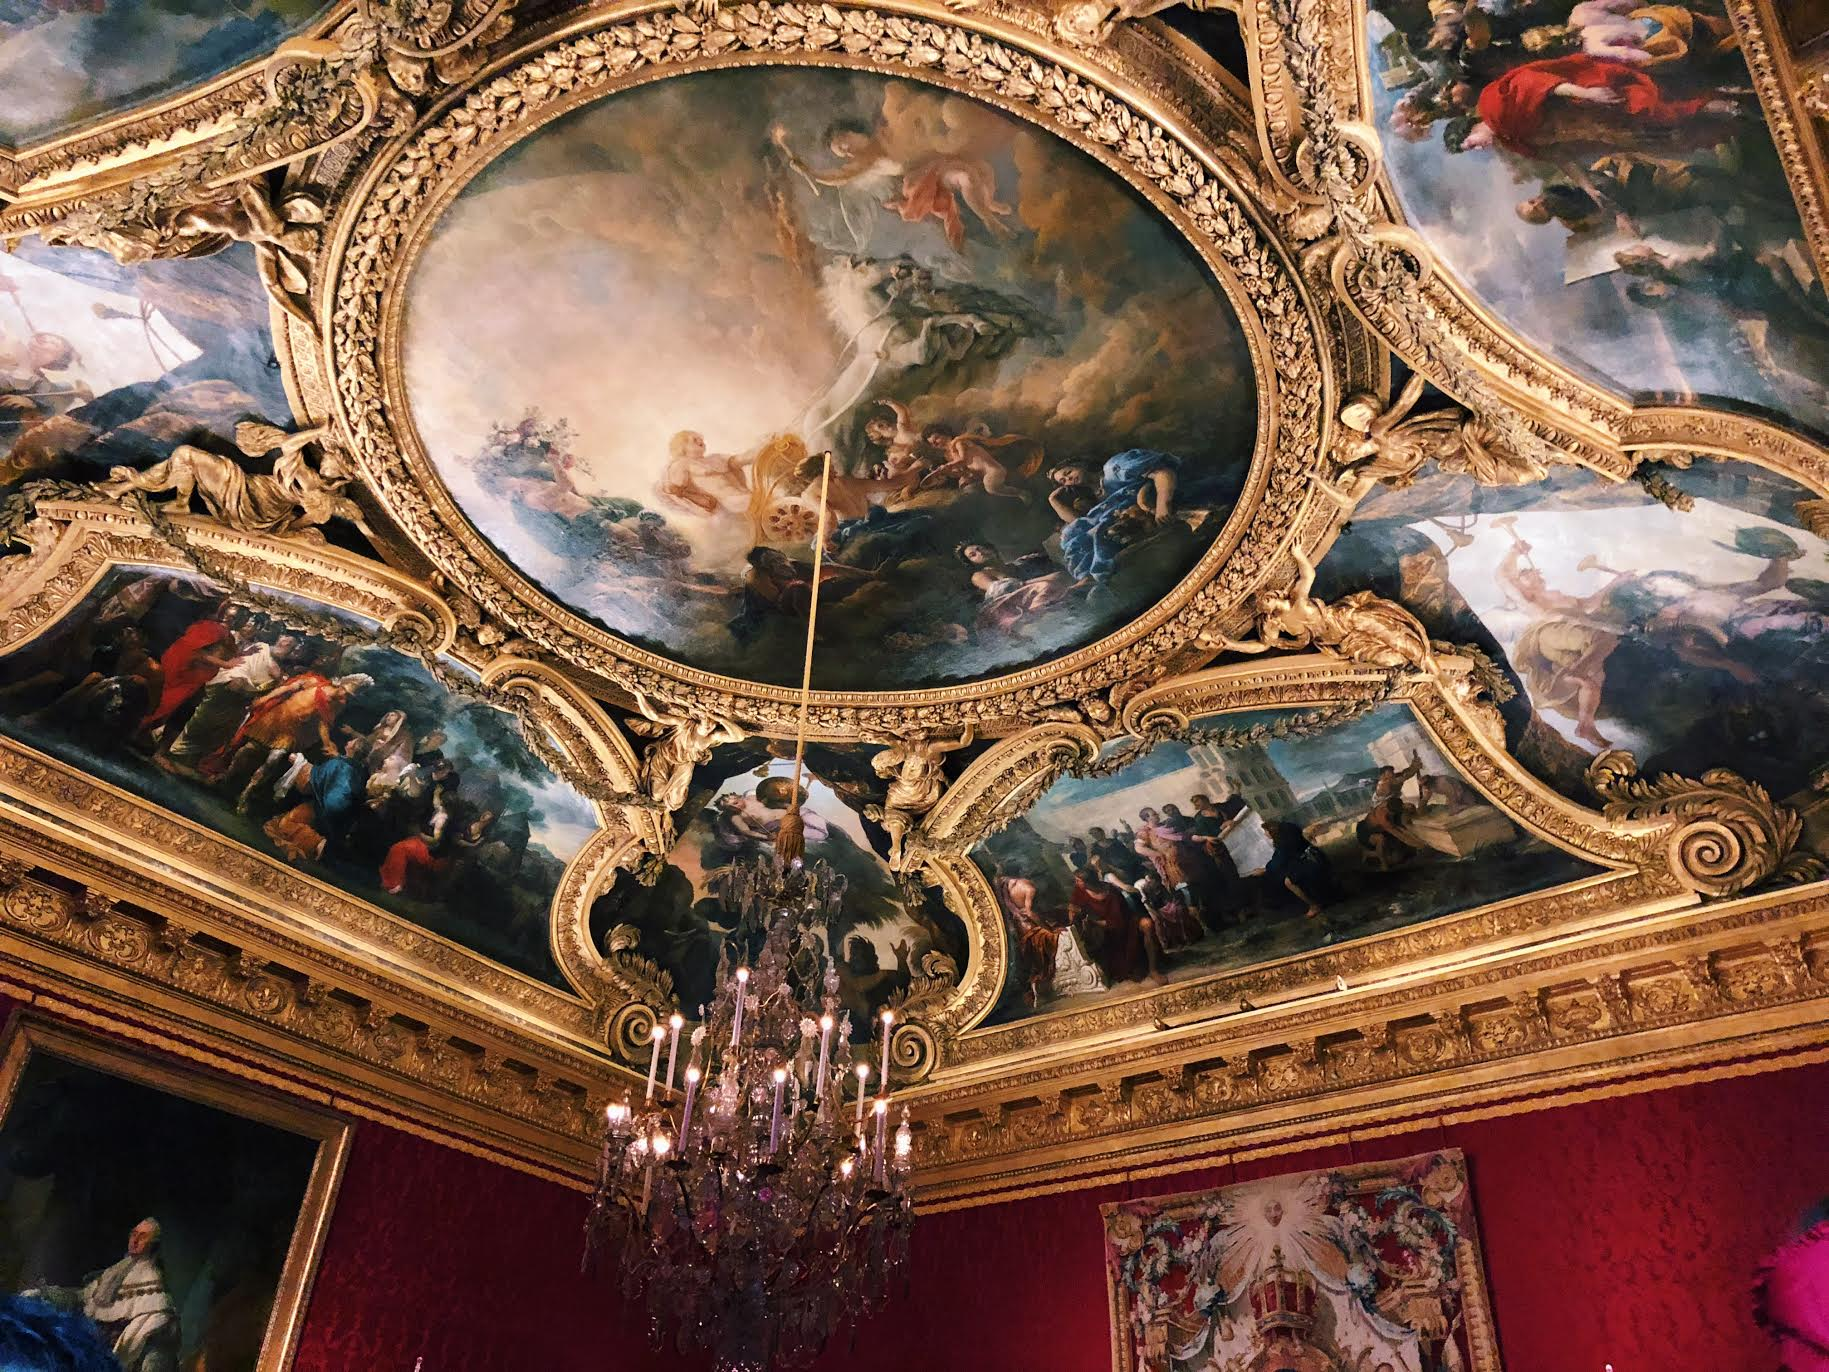 Muslim-travel-guide-Paris-Palace-of-Versailles-ceiling-mural.jpg